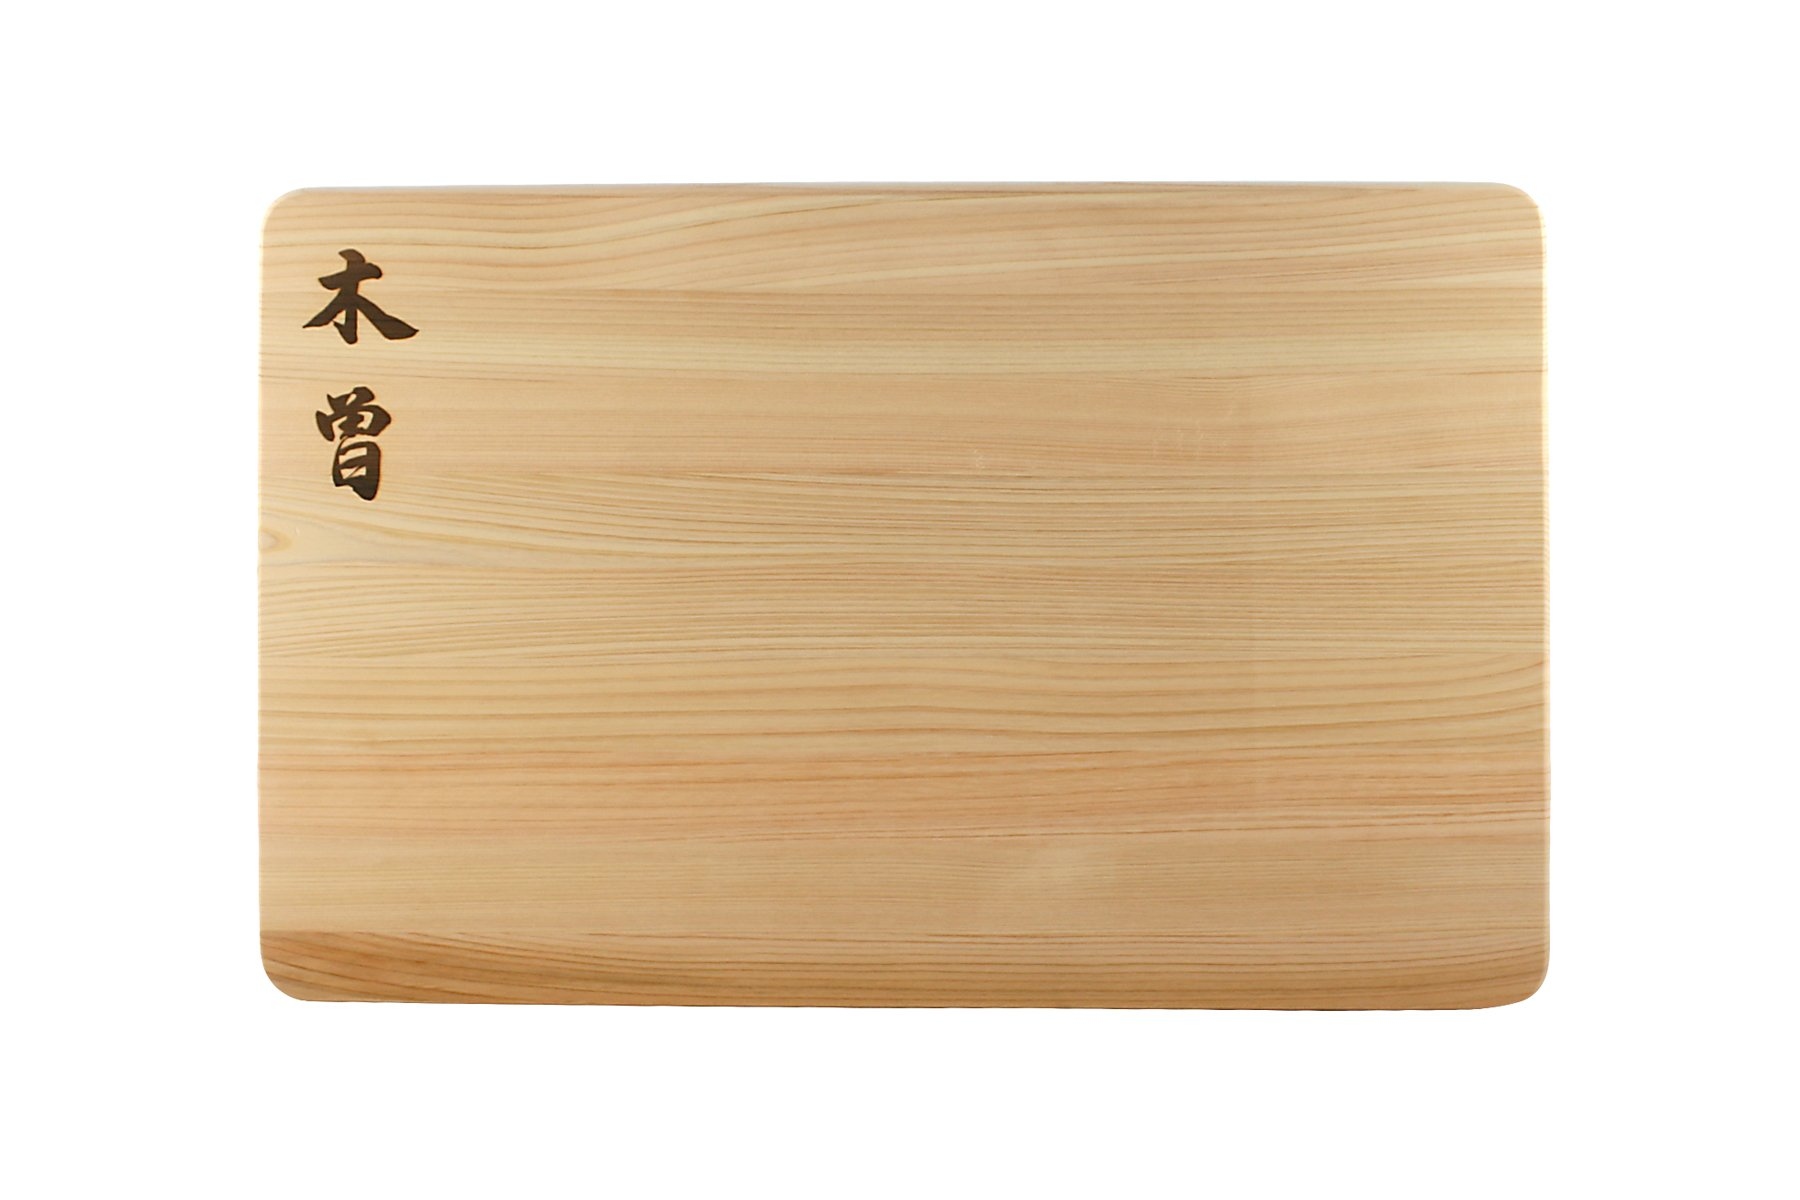 Kiso Hinoki Cutting Board 16 x 10 x 1 Inch, Made in Japan - Authentic Japanese Cypress